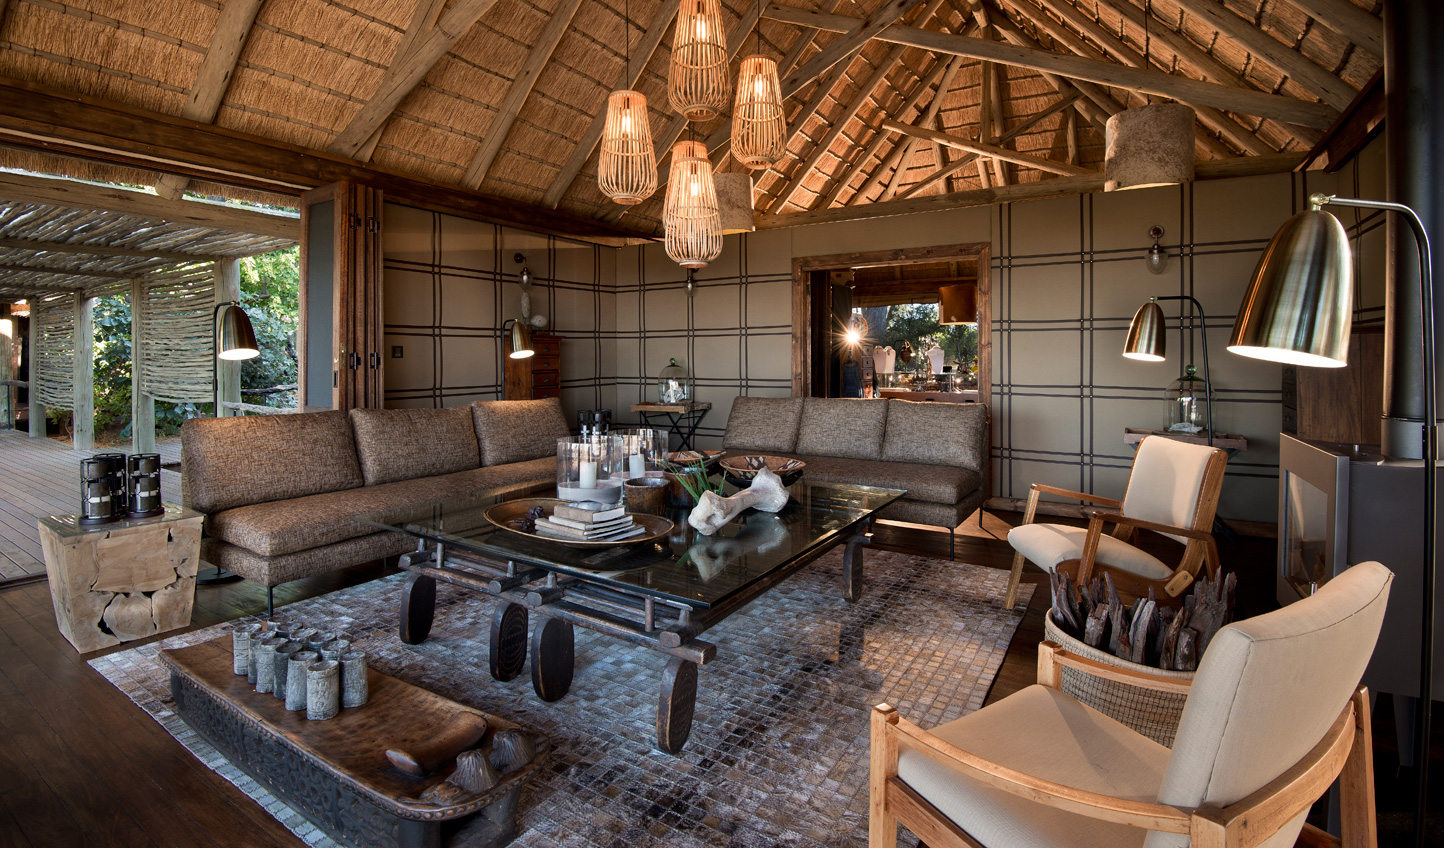 Stylish African design gives a sense of place